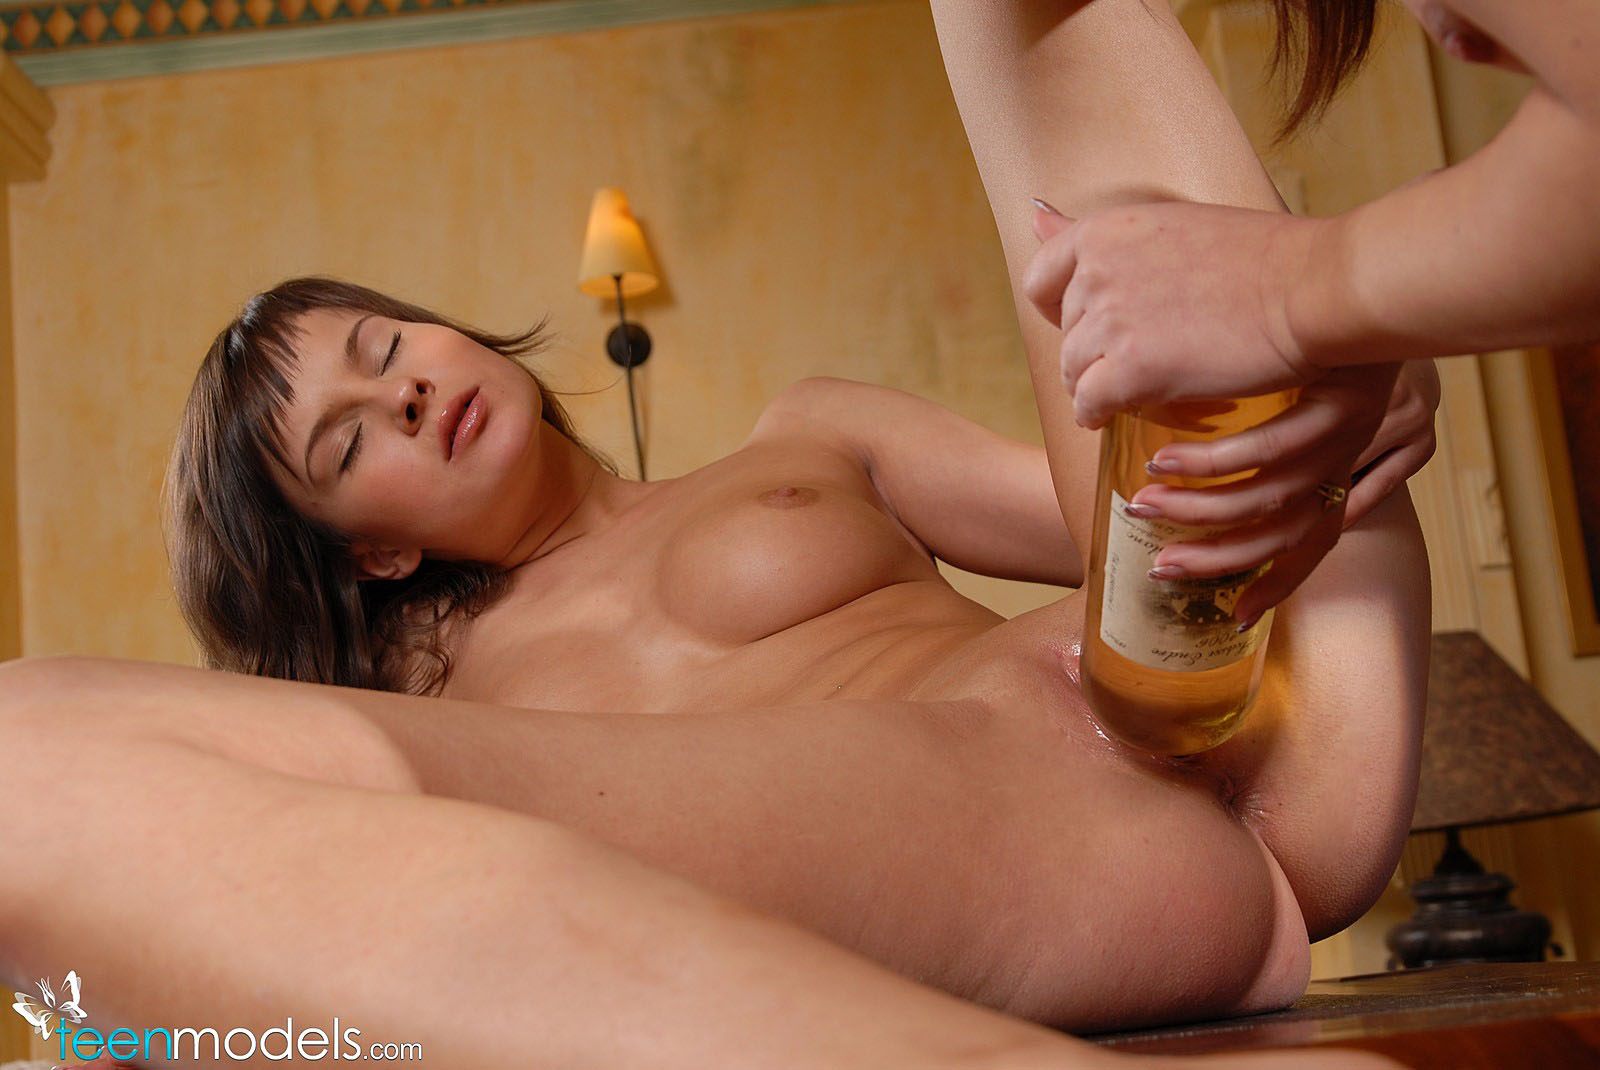 bottle inside young pussy